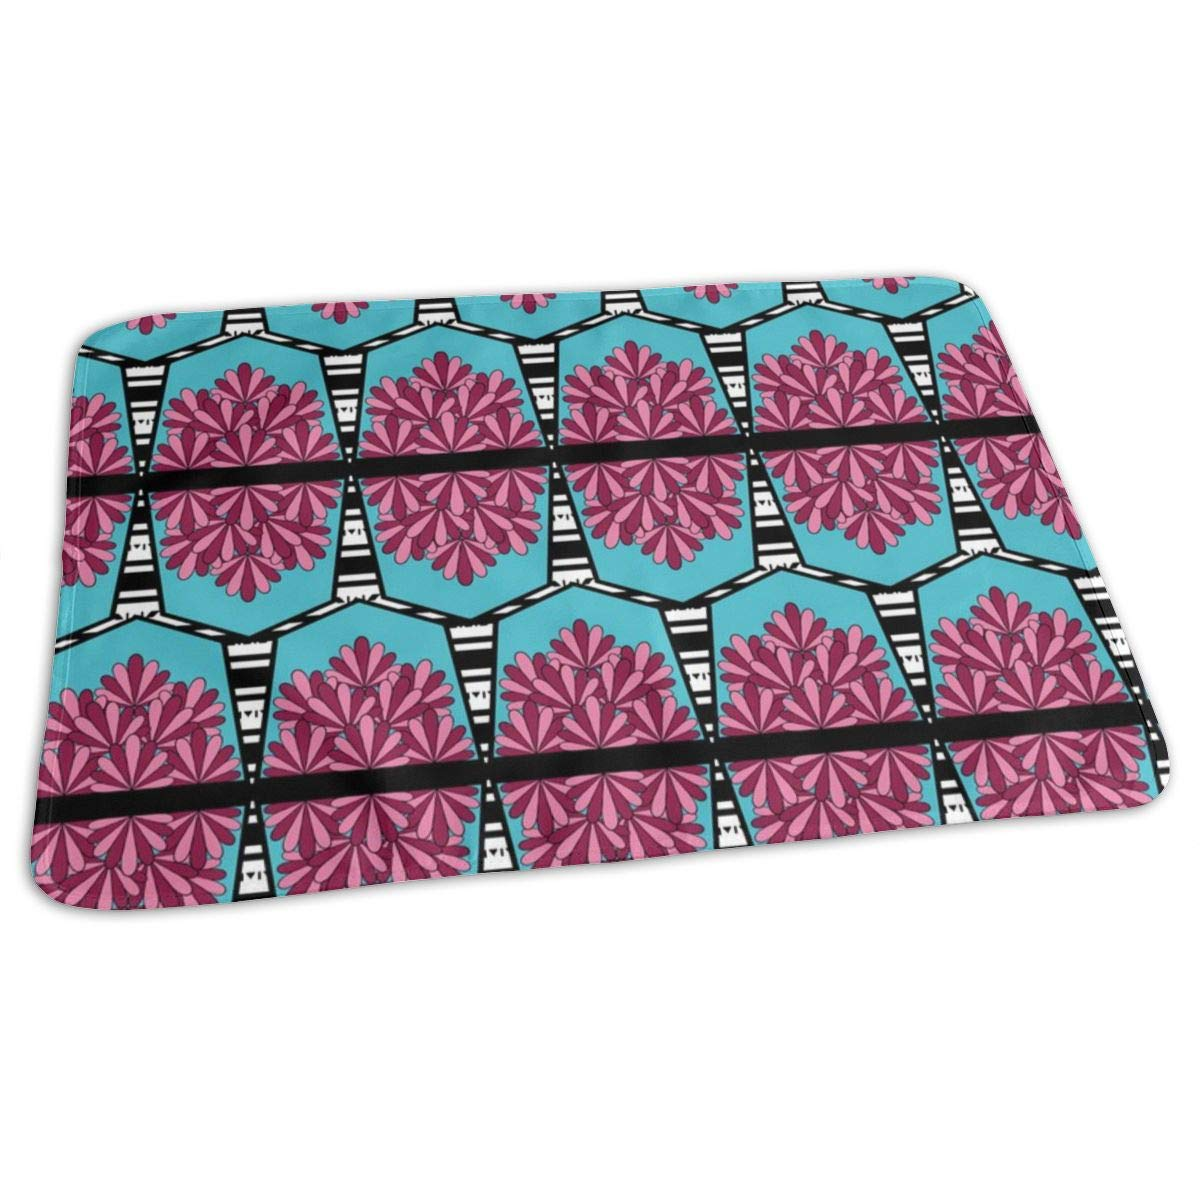 Party Flag Bunting In Pink And Aqua Baby Portable Reusable Changing Pad Mat 19.7x27.5 inch